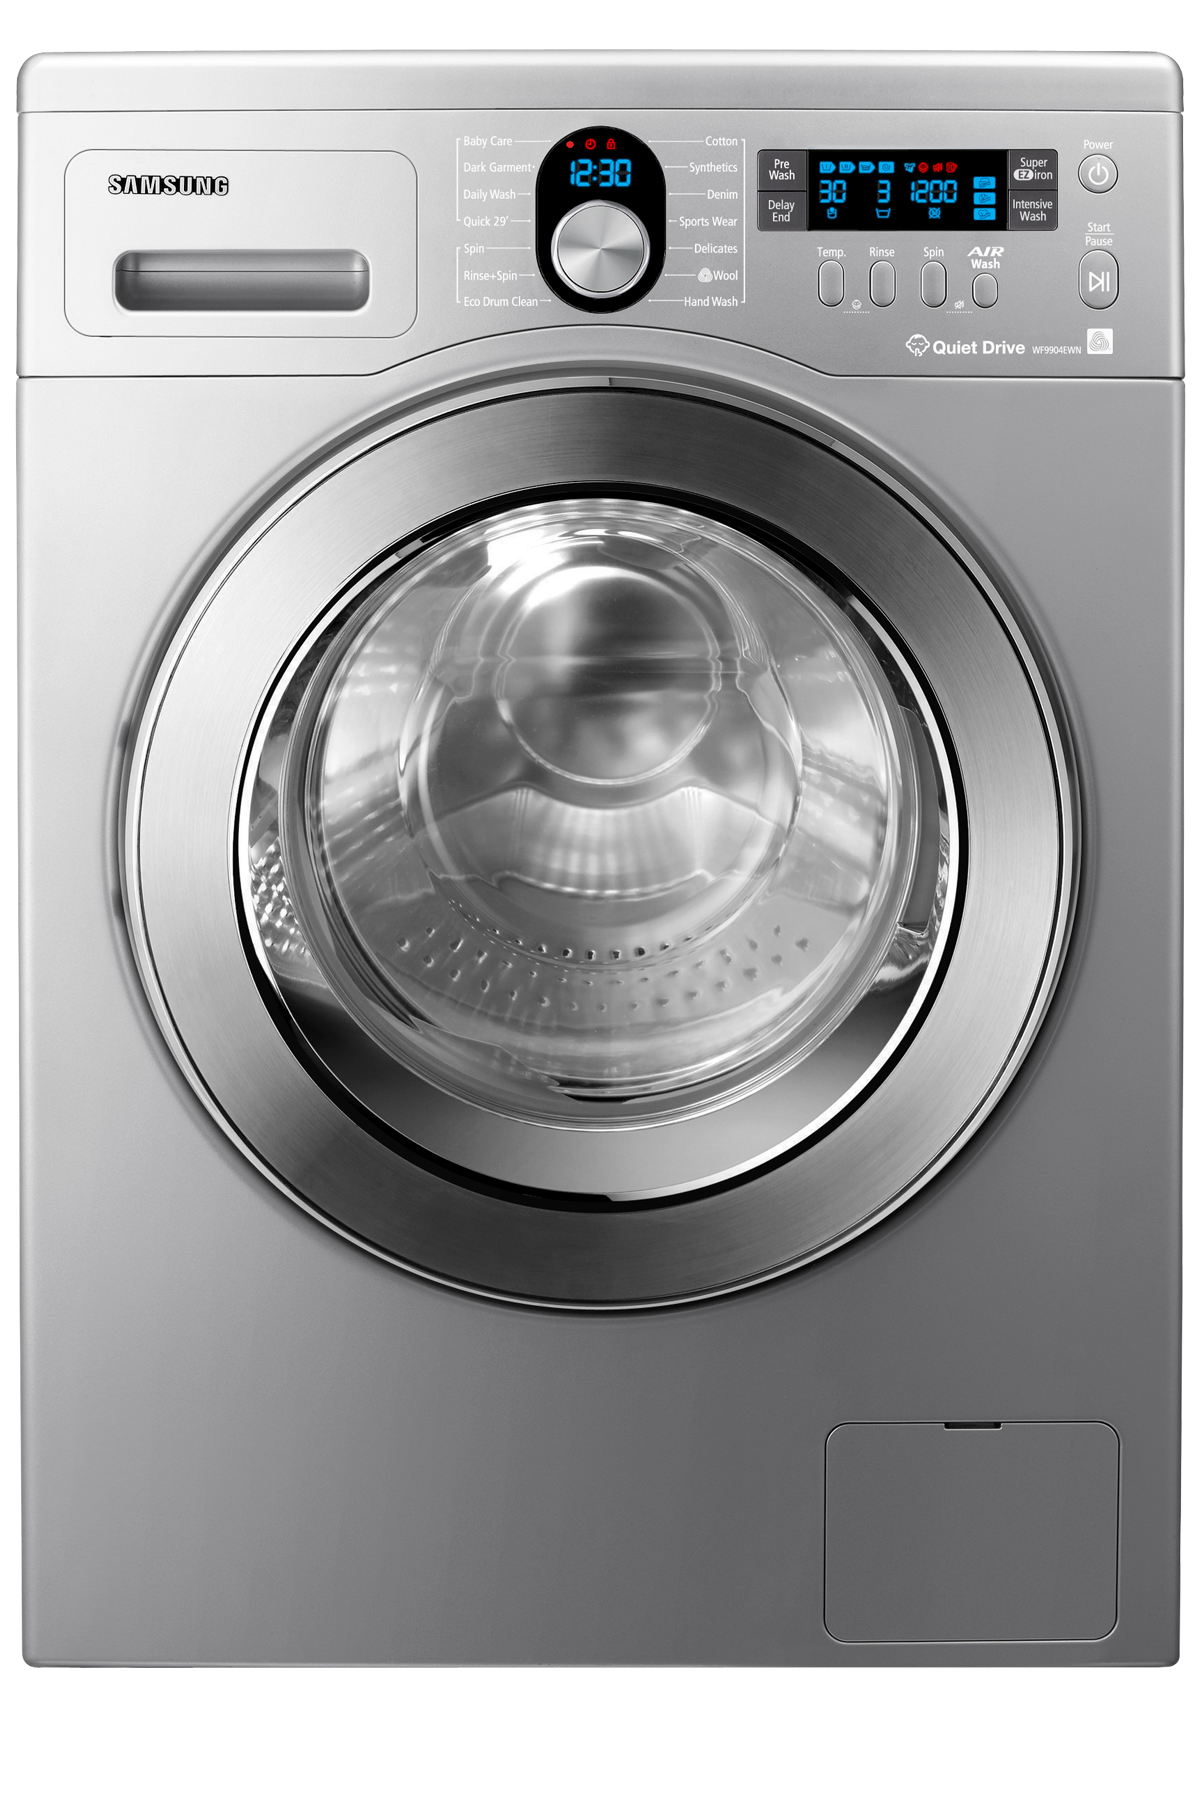 GRIFFIN Washer with New Diamond Drum, 9 kg